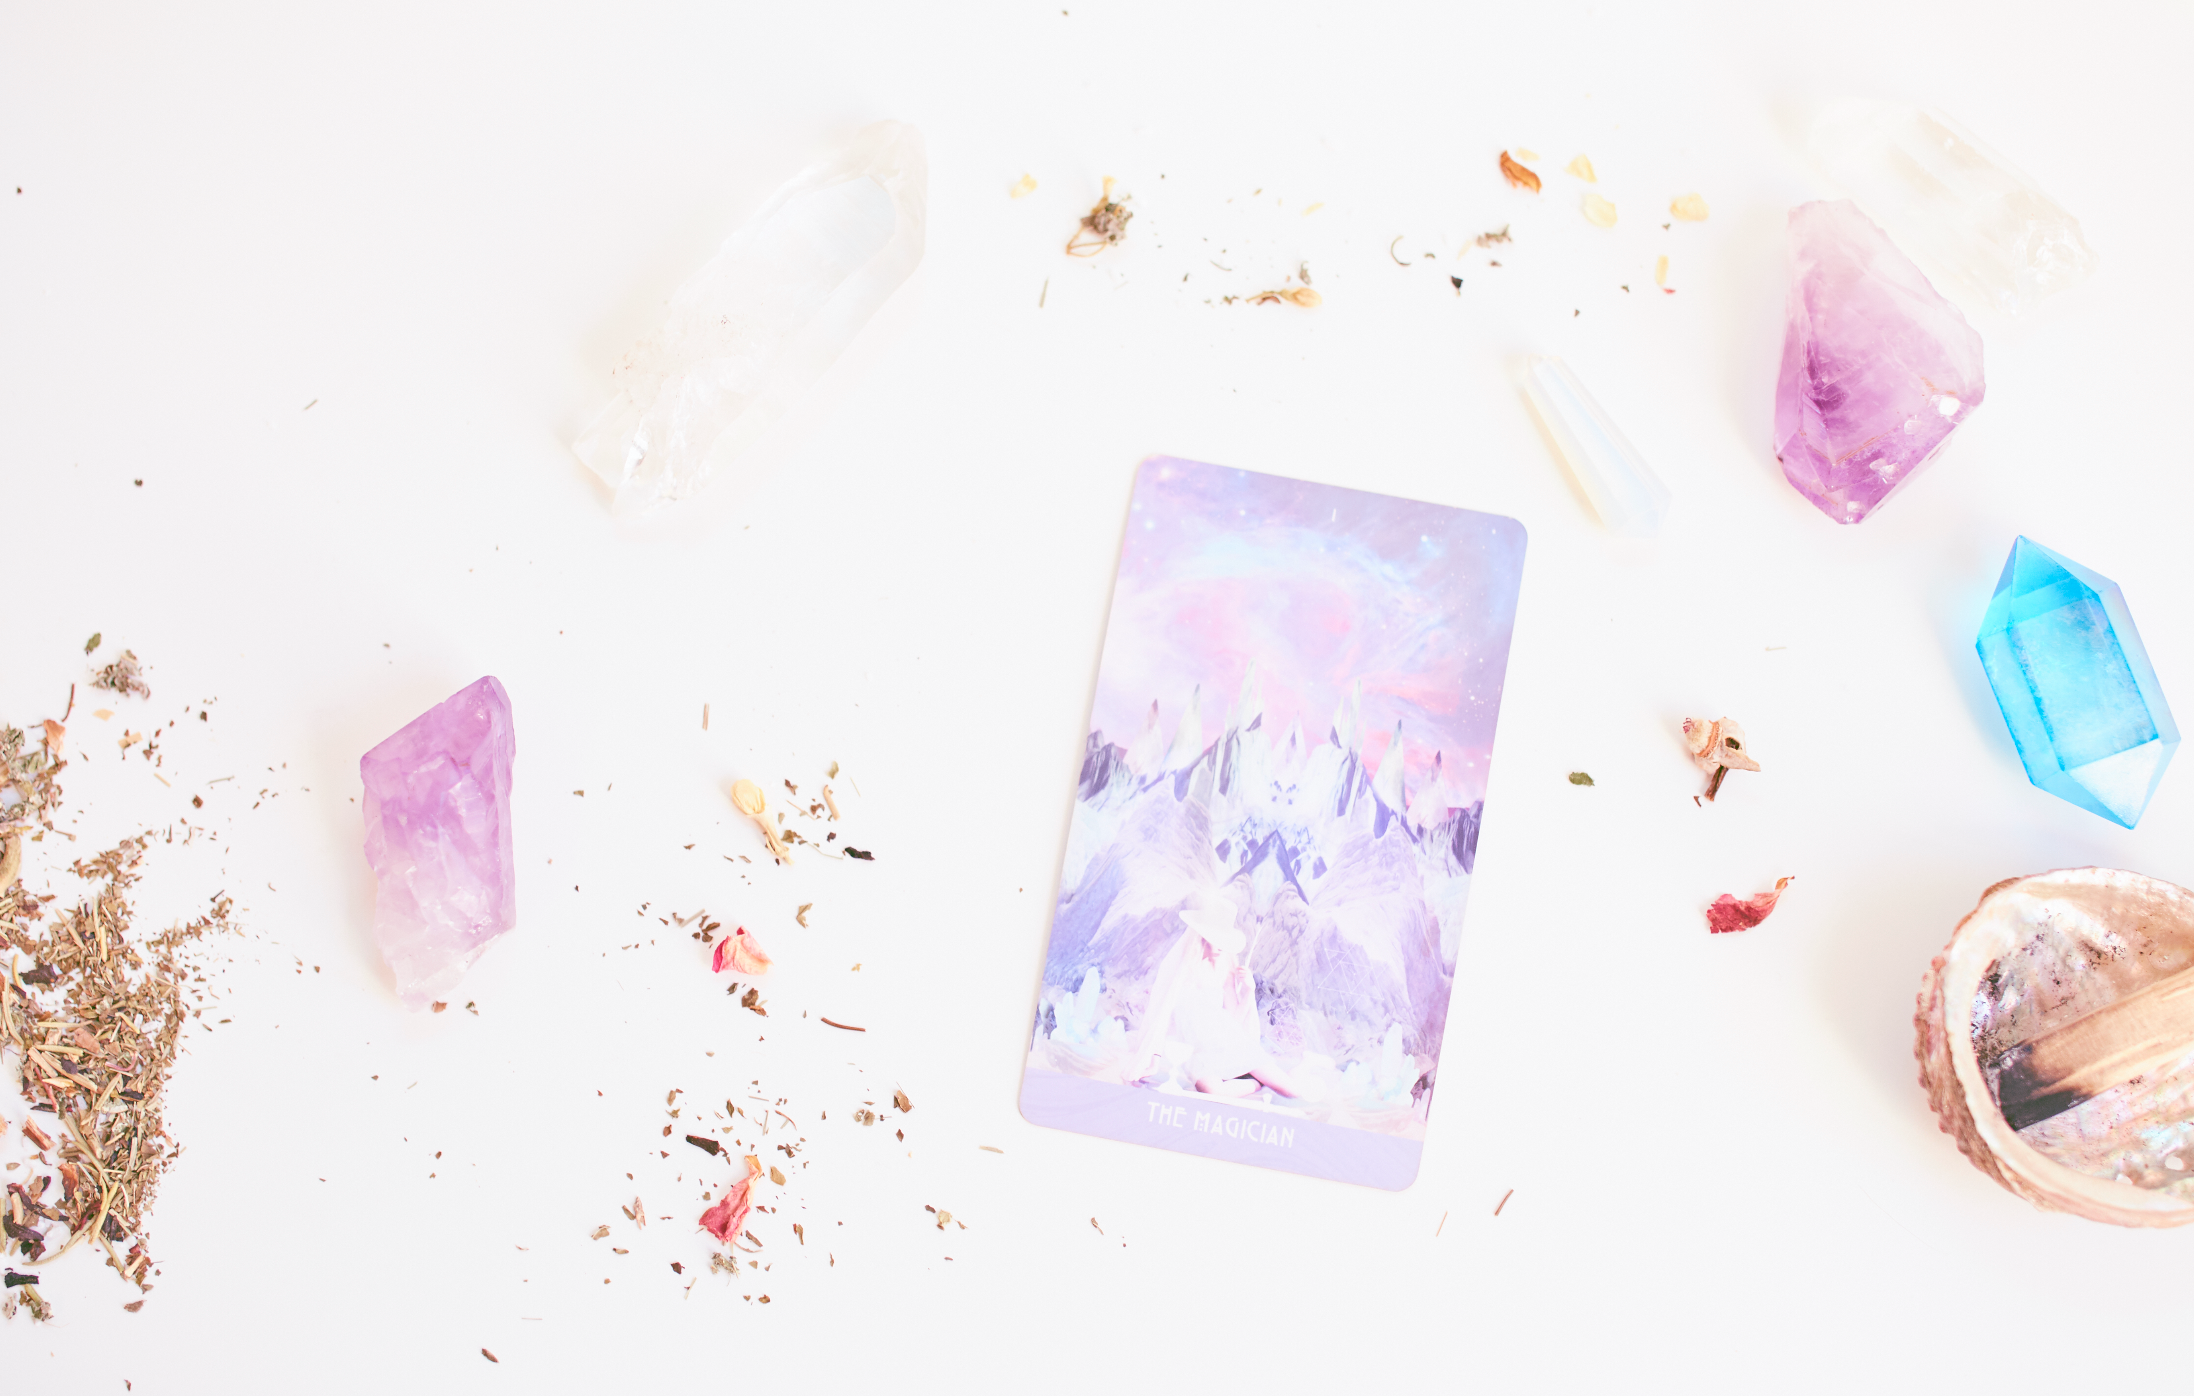 Witchy Wellness - Create your own cosmic Self-Care practice.